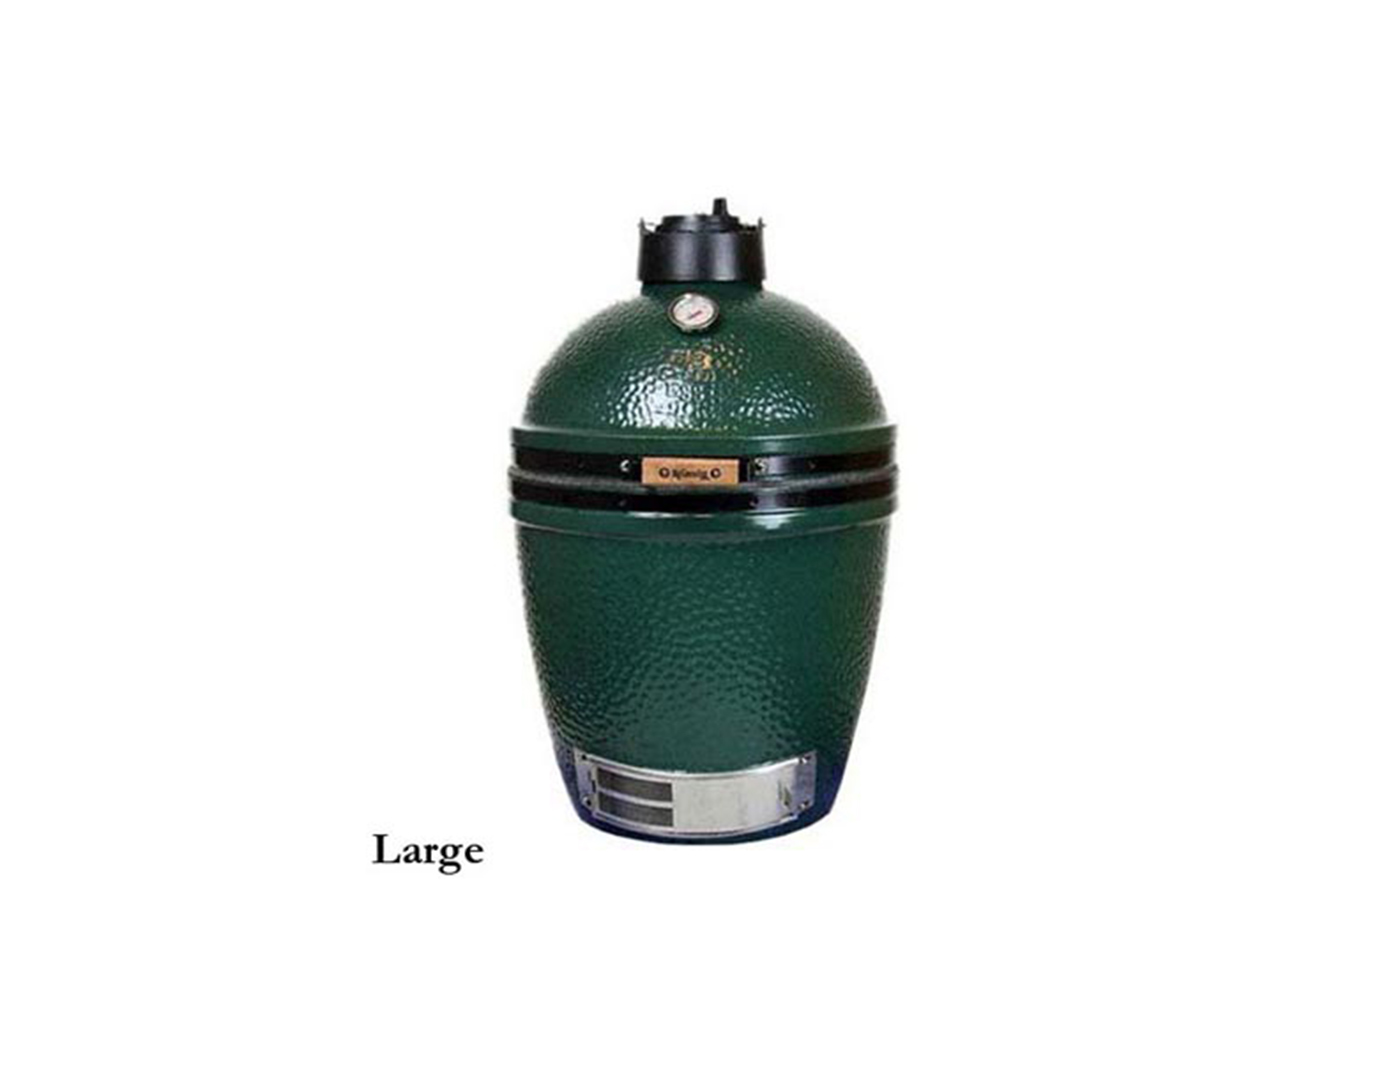 Big Green Egg Grill - Large